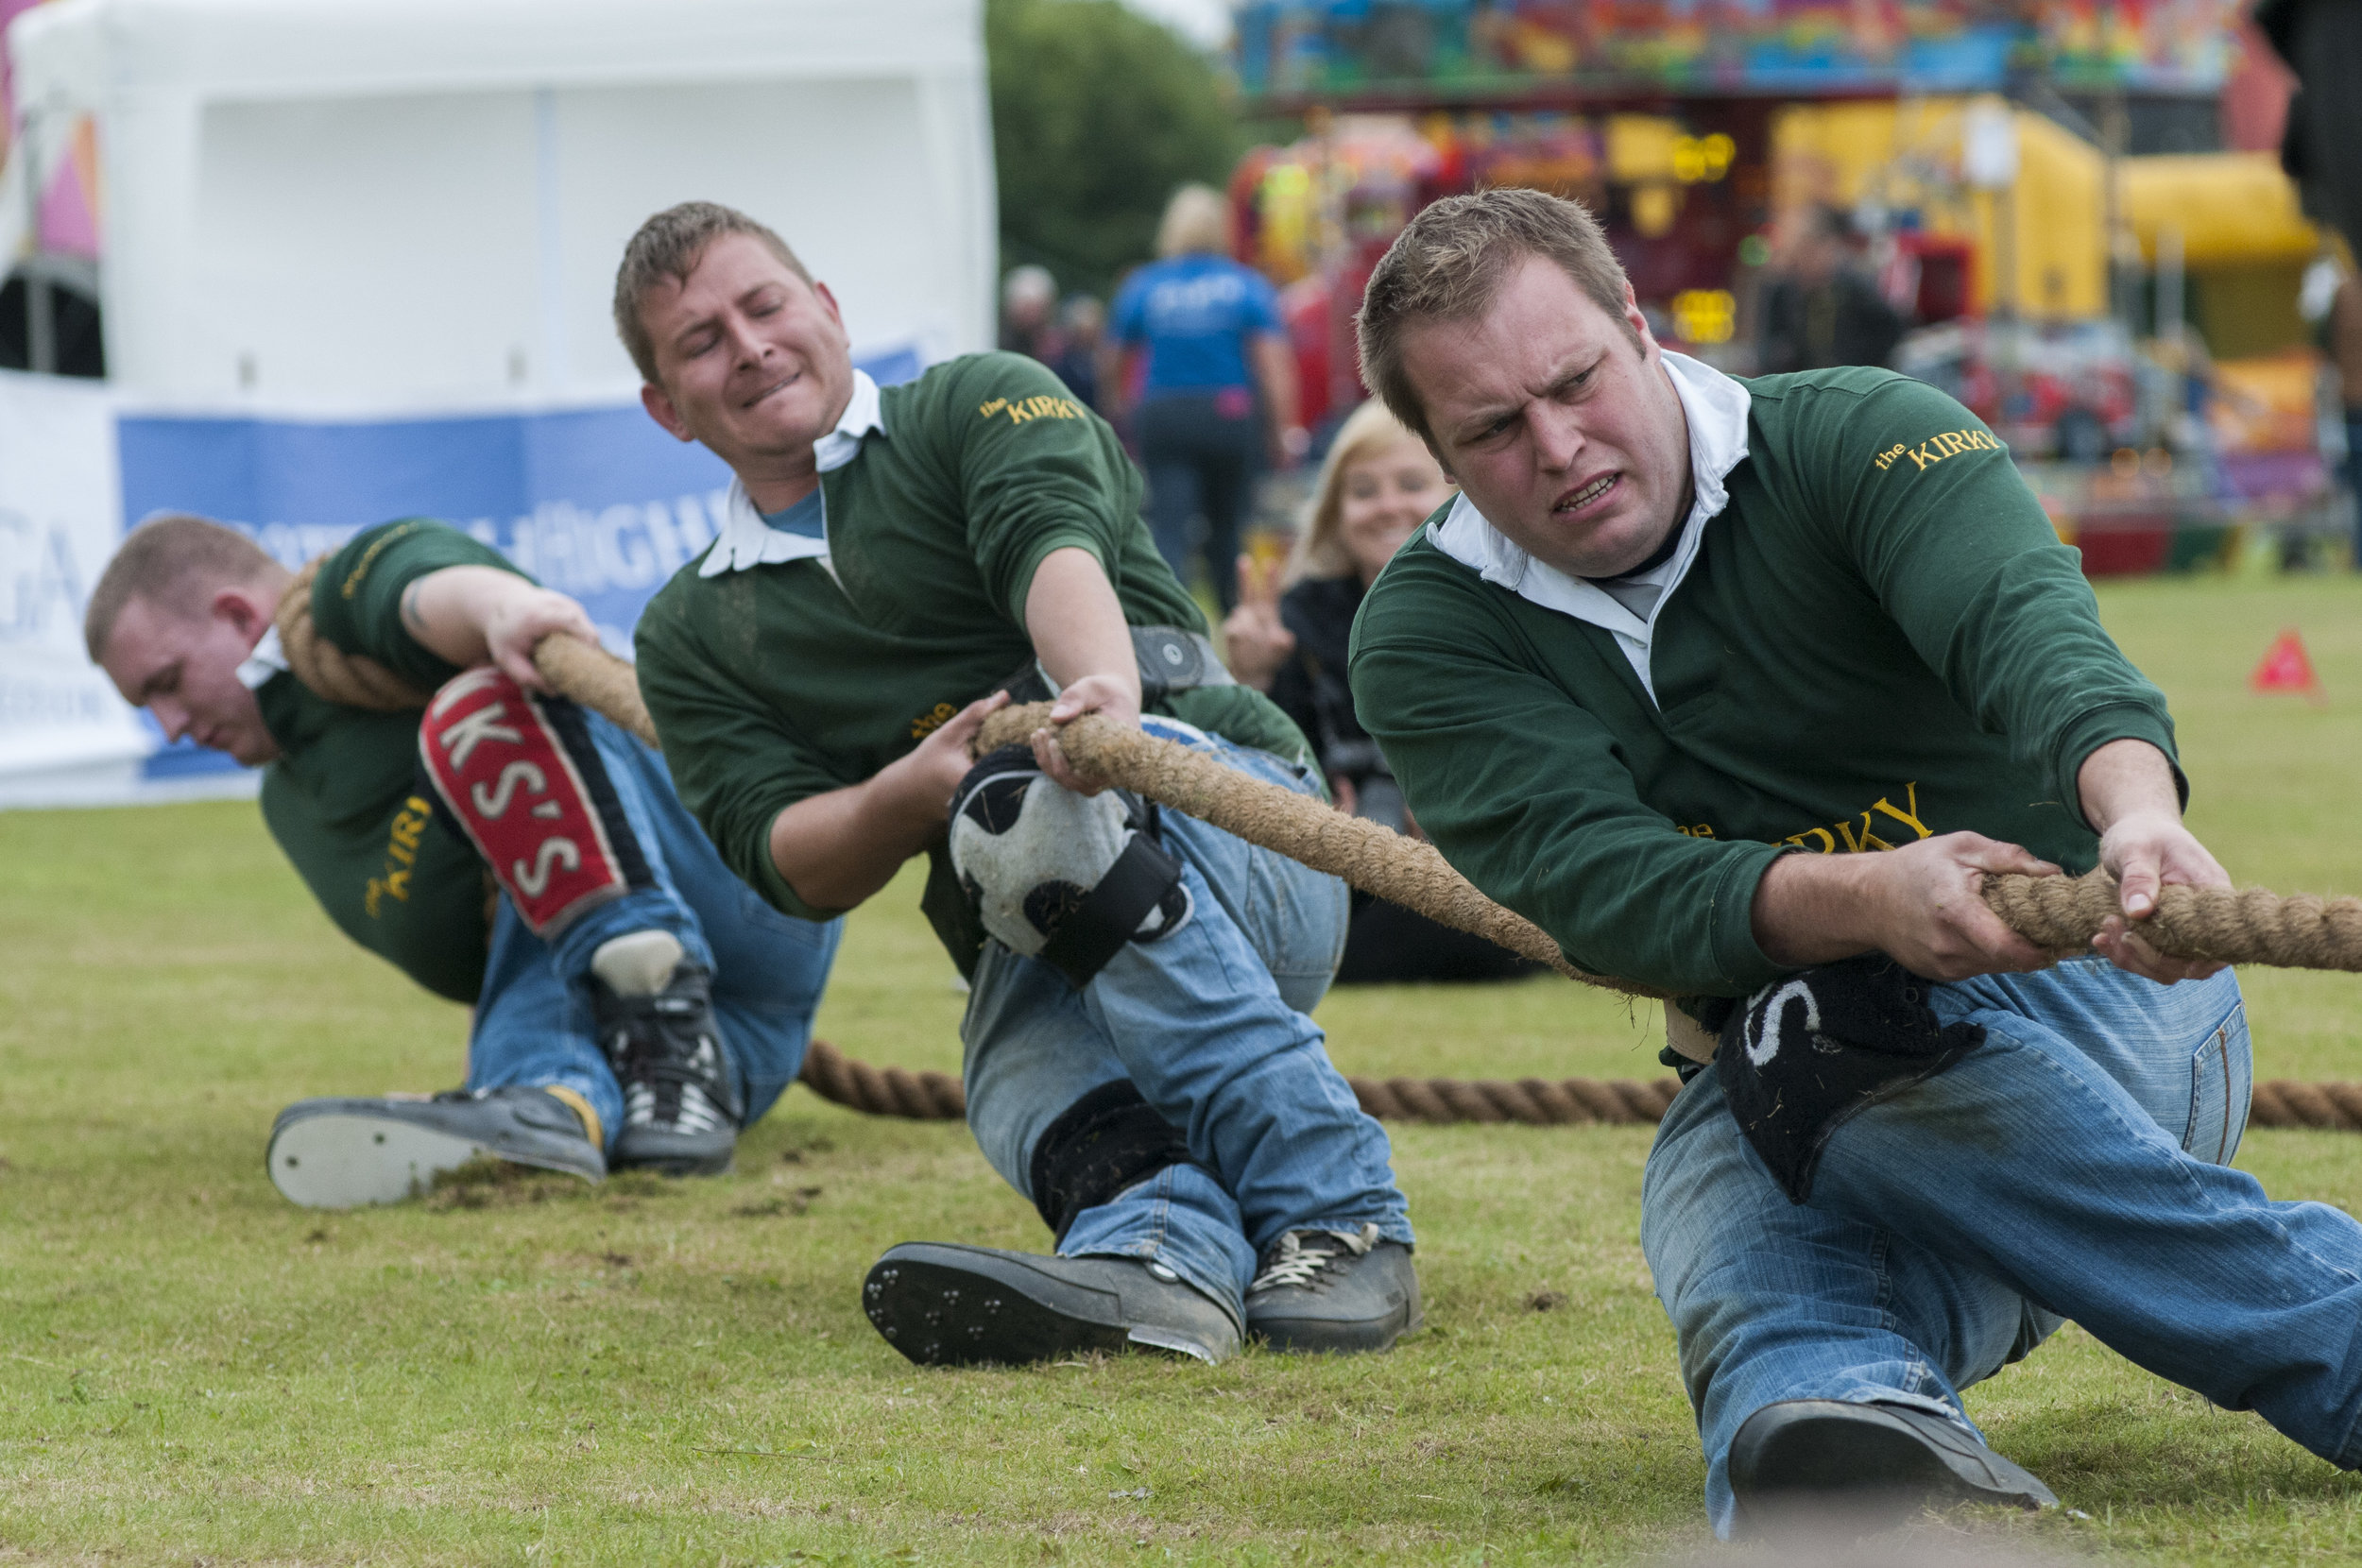 "Members of ""The Kirky"" team from Strathardle, Scotland compete in the tug-o-war event at the St. Andrews Highland games on July 26, 2015 in St. Andrews, Scotland."